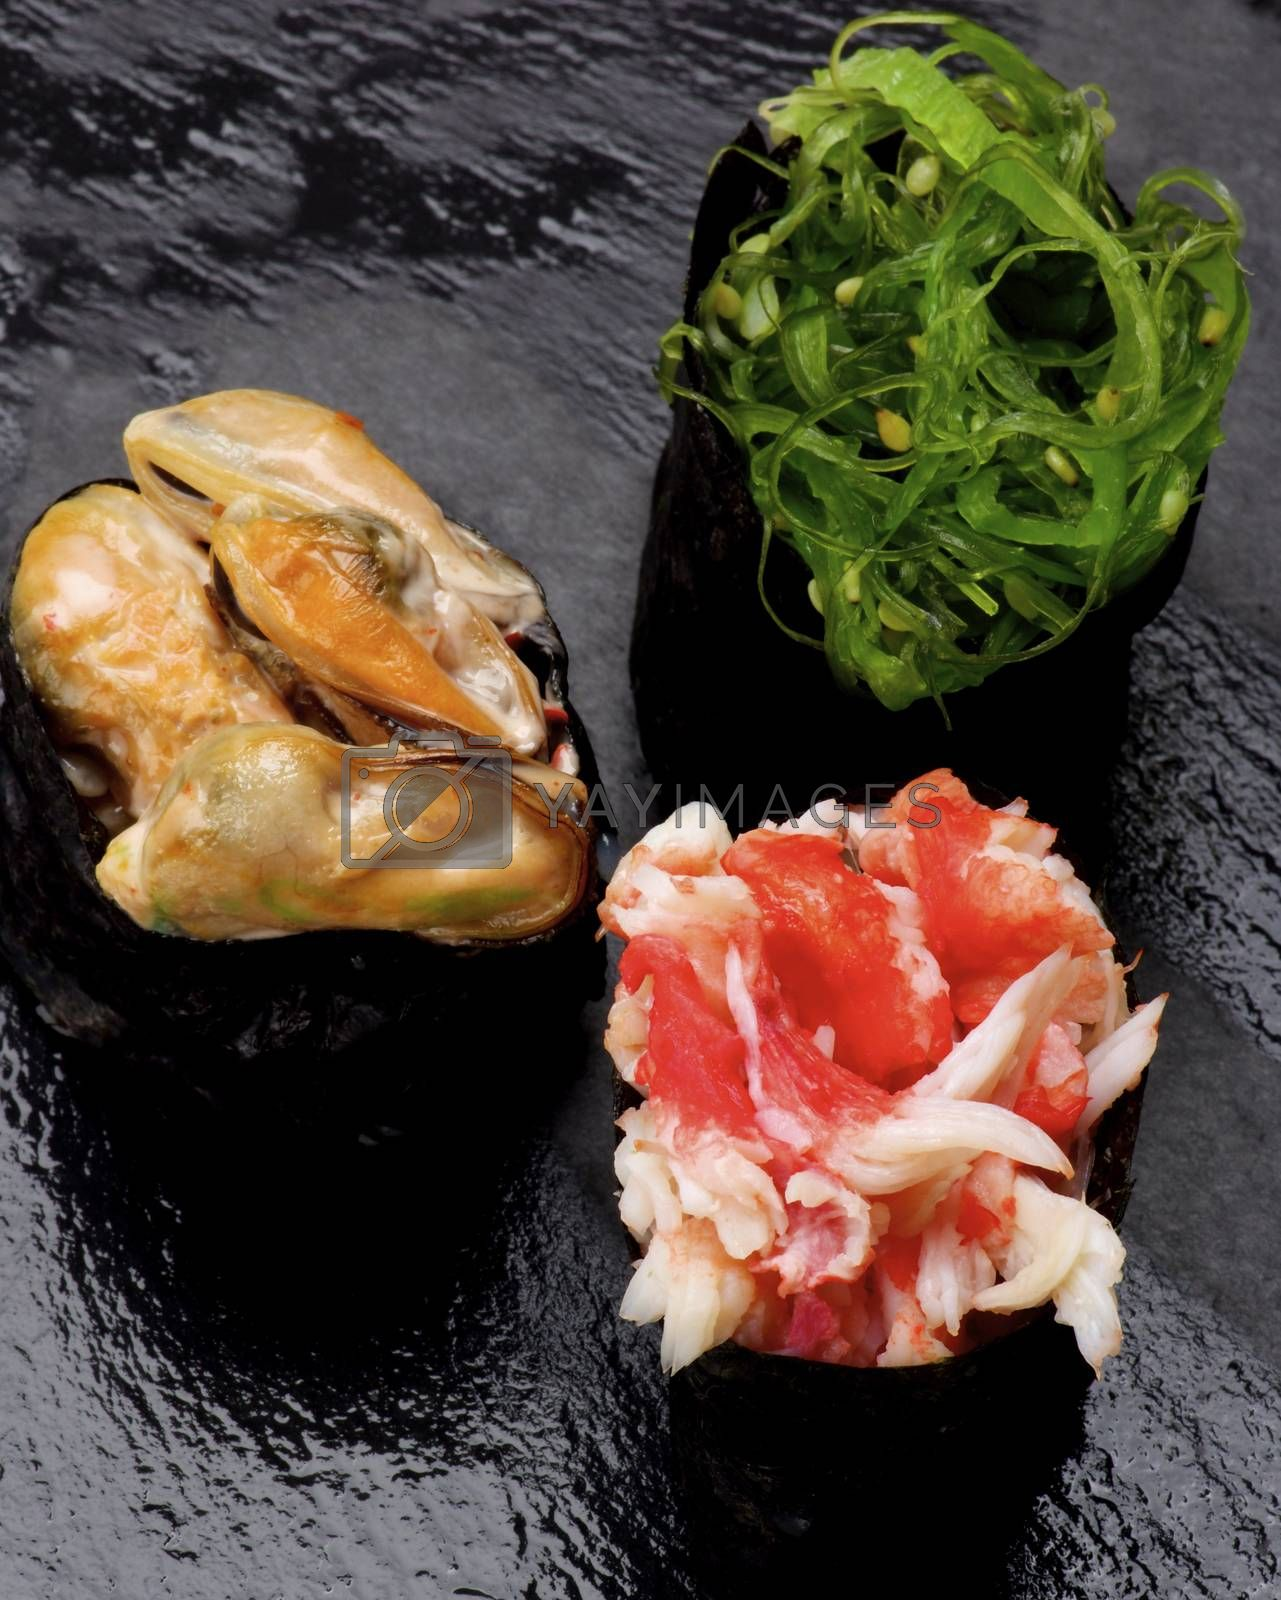 Various Japanese Sushi Gunkan Rolled Up in Nigiri with Seaweed, Shrimps and Mussels in Sauce closeup on Wet Slate background. Focus on Foreground